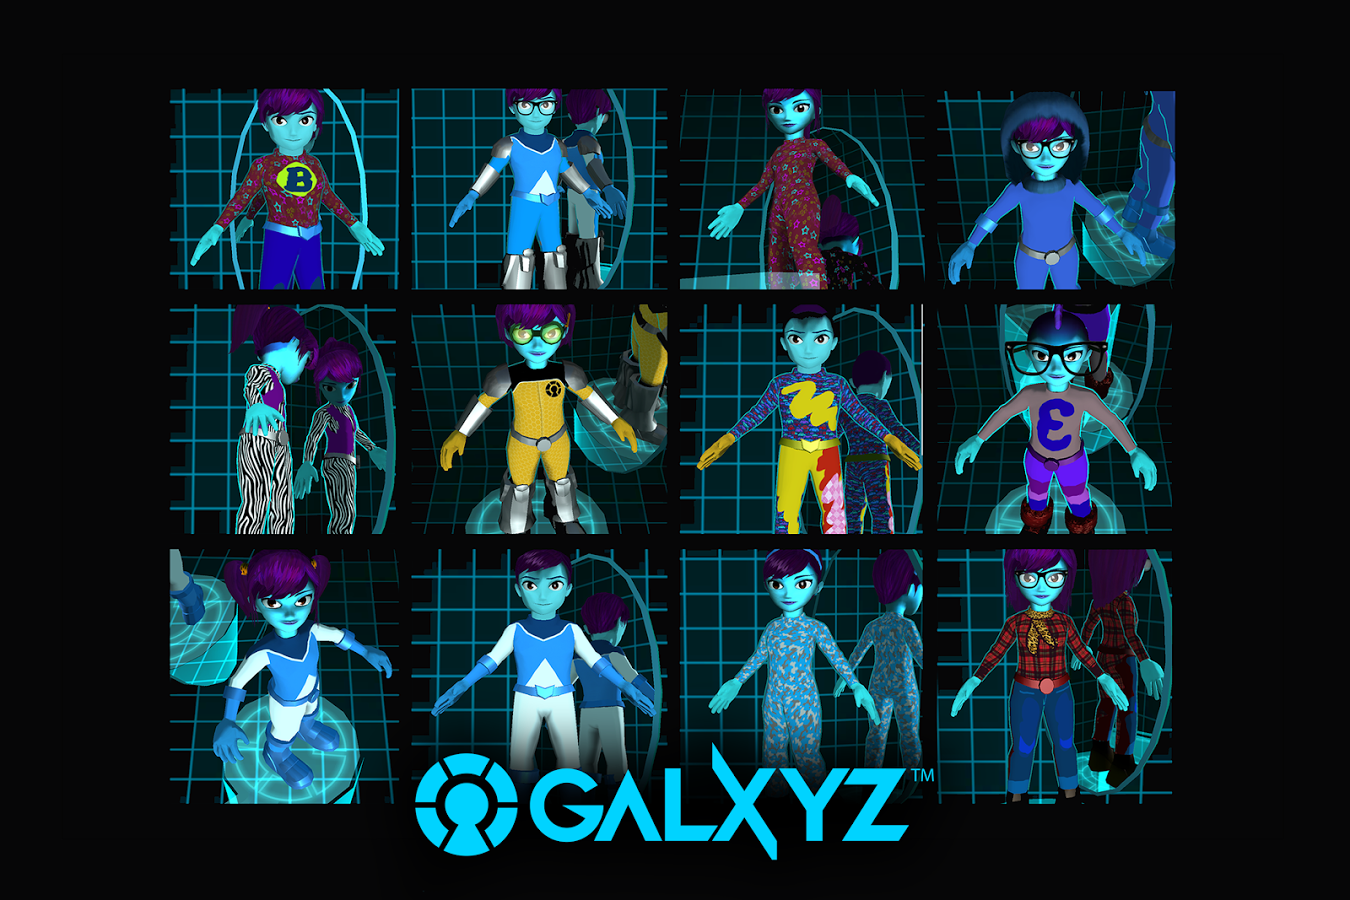 Galxyz is already available on browser, iOS, and Android.